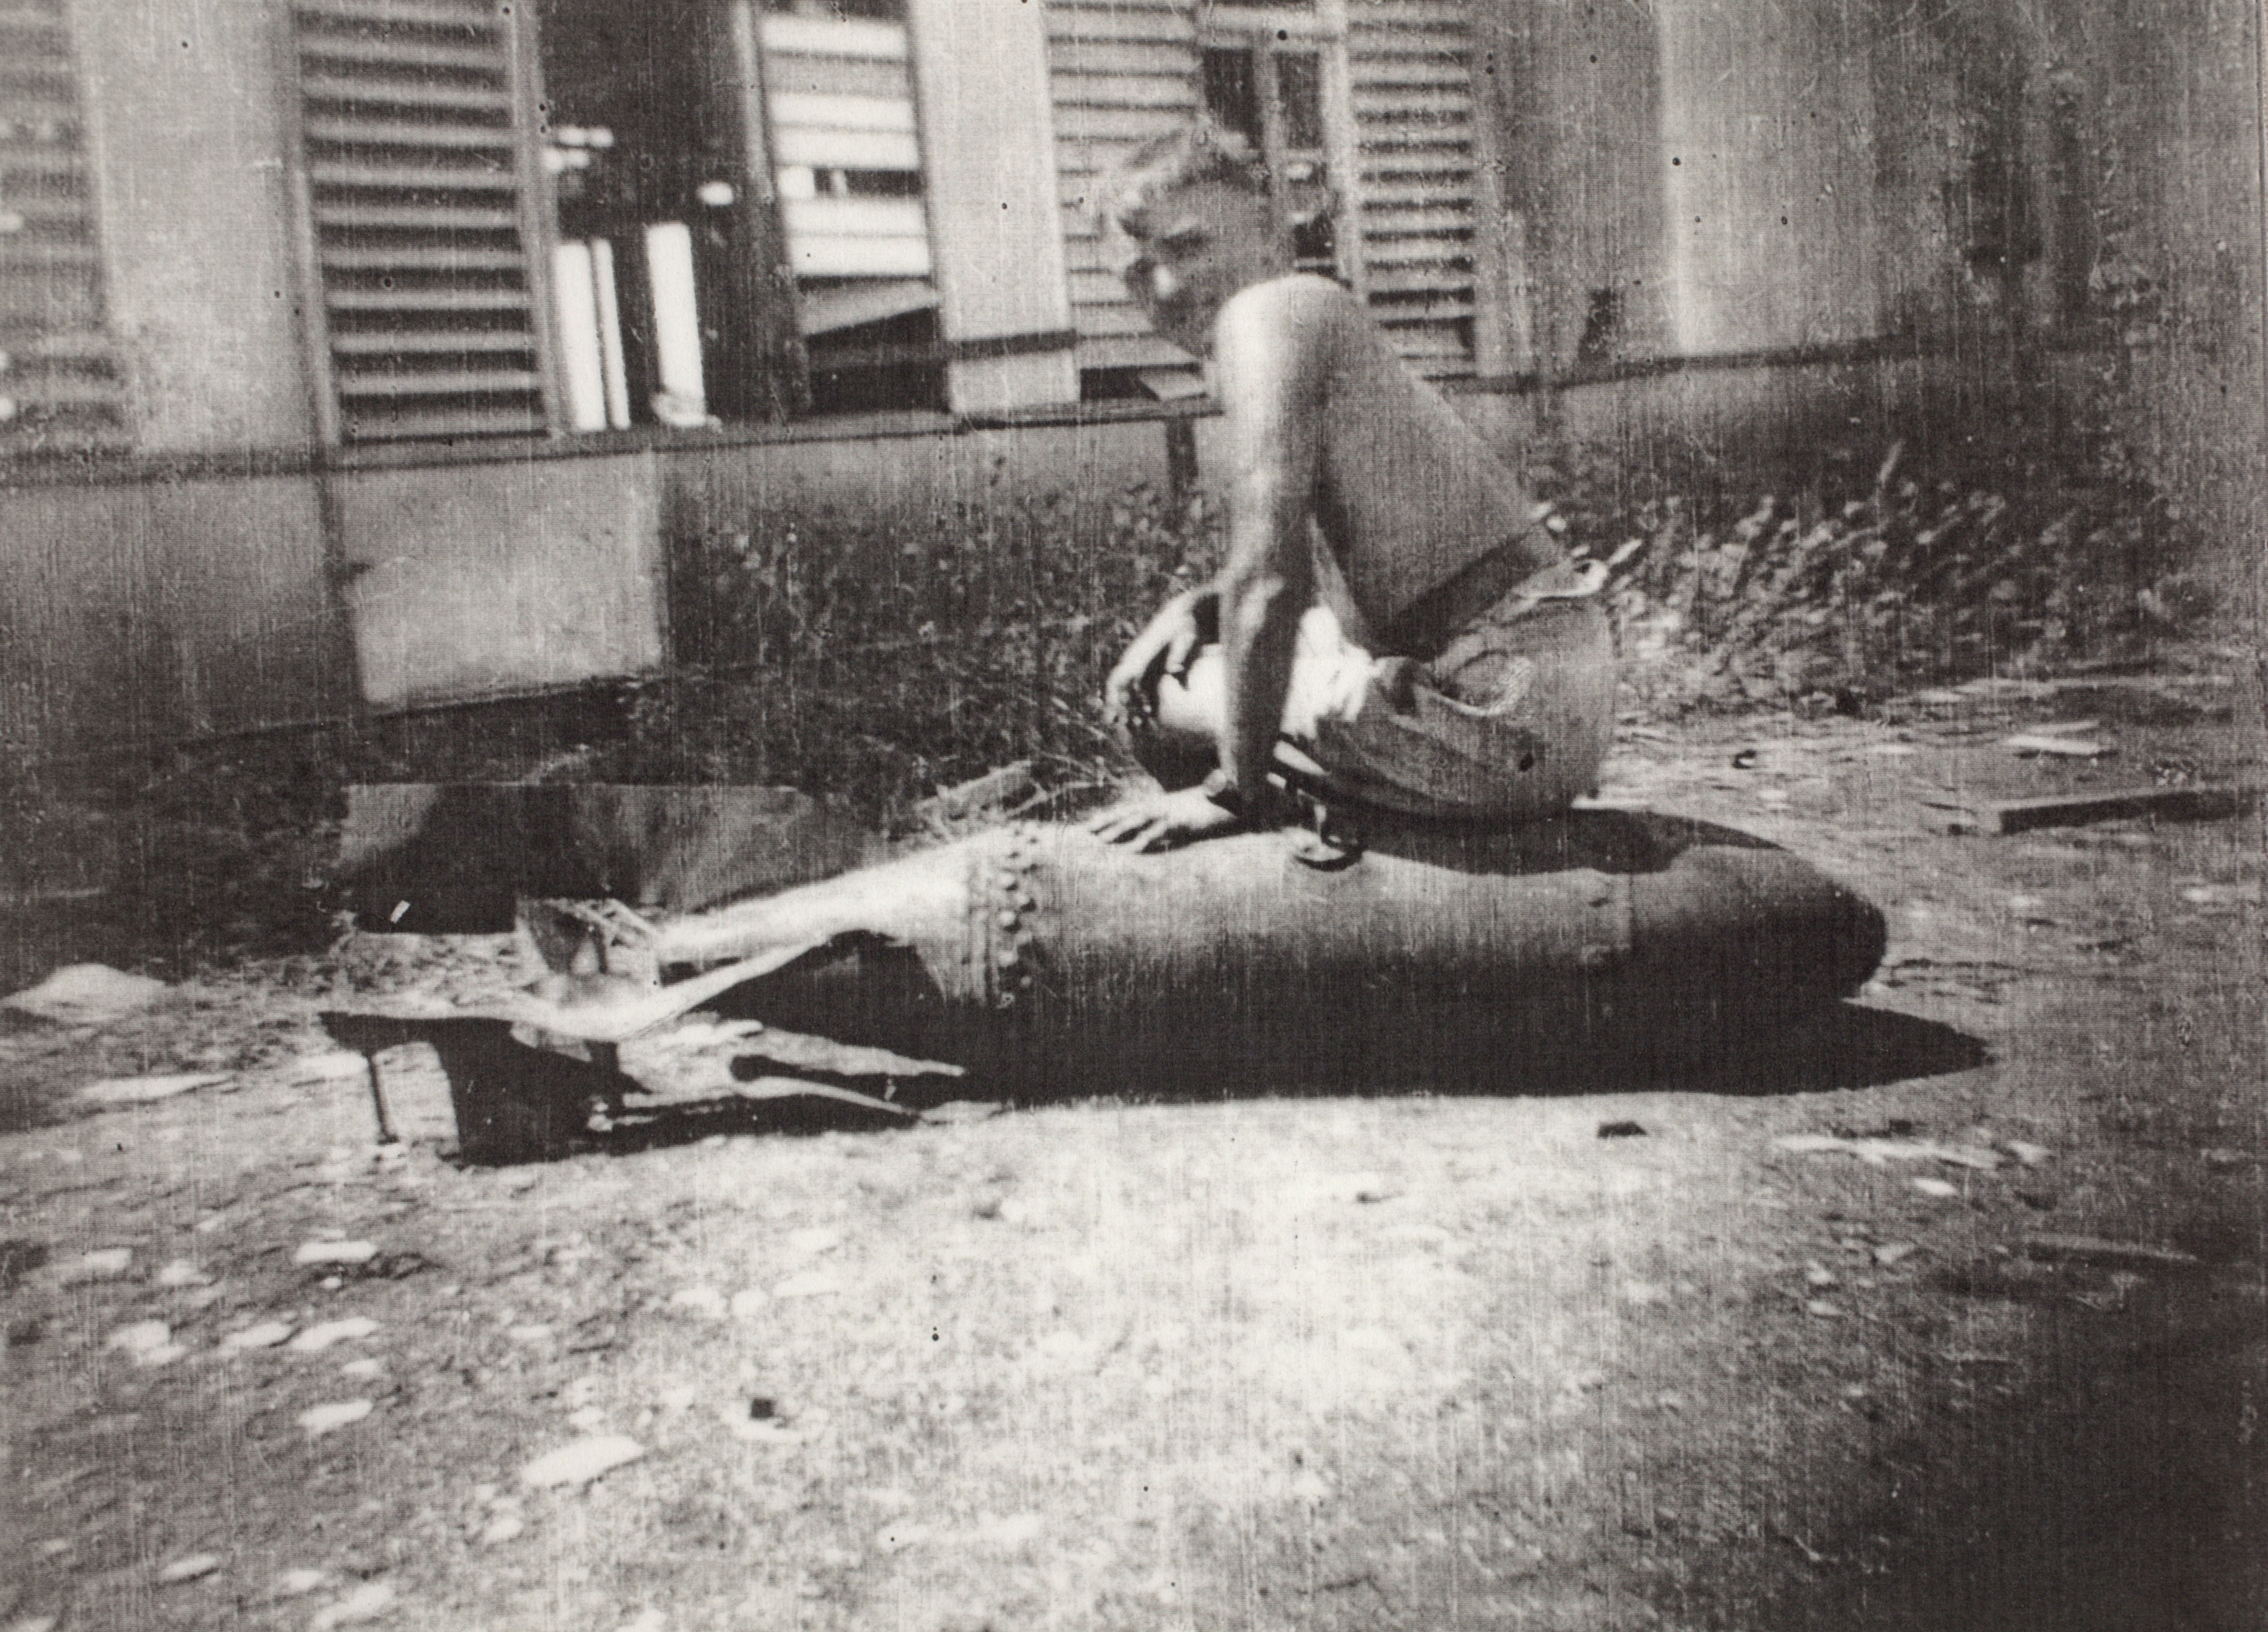 George A. Marven astride a defused unexploded 250 pound Japanese bomb